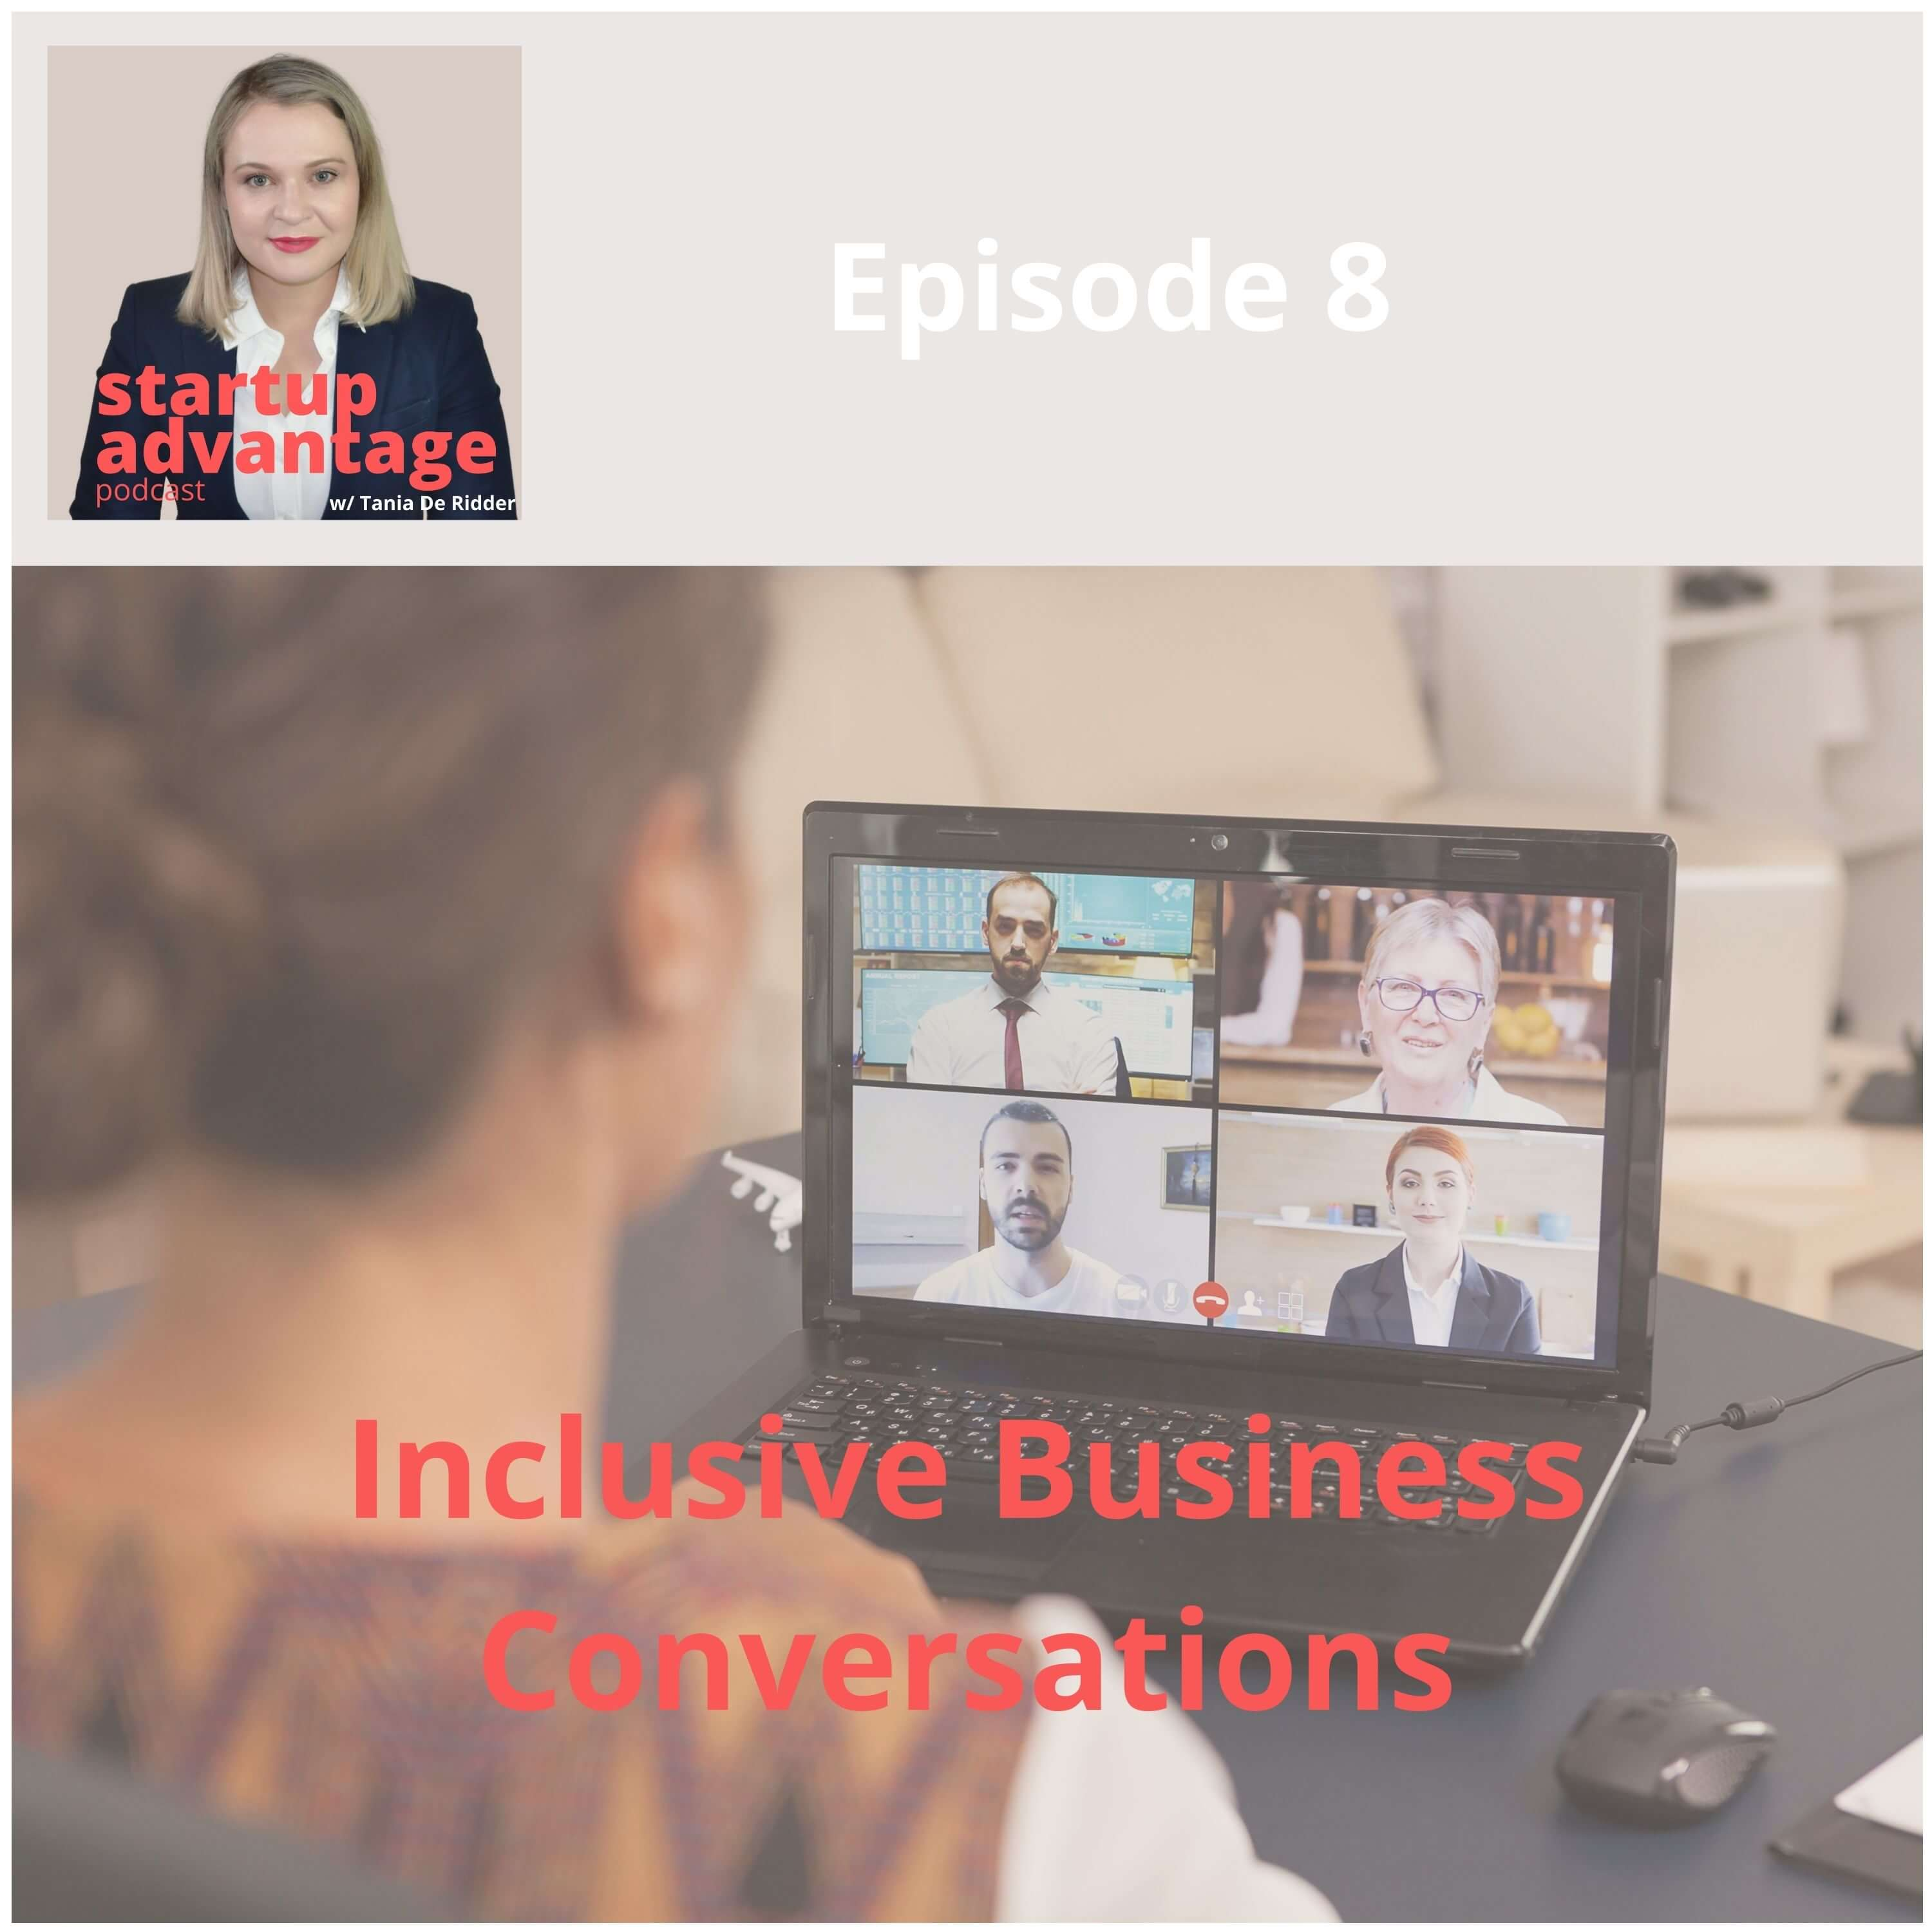 Inclusive Business Conversations: You Can Learn How! (Start for Free Now)